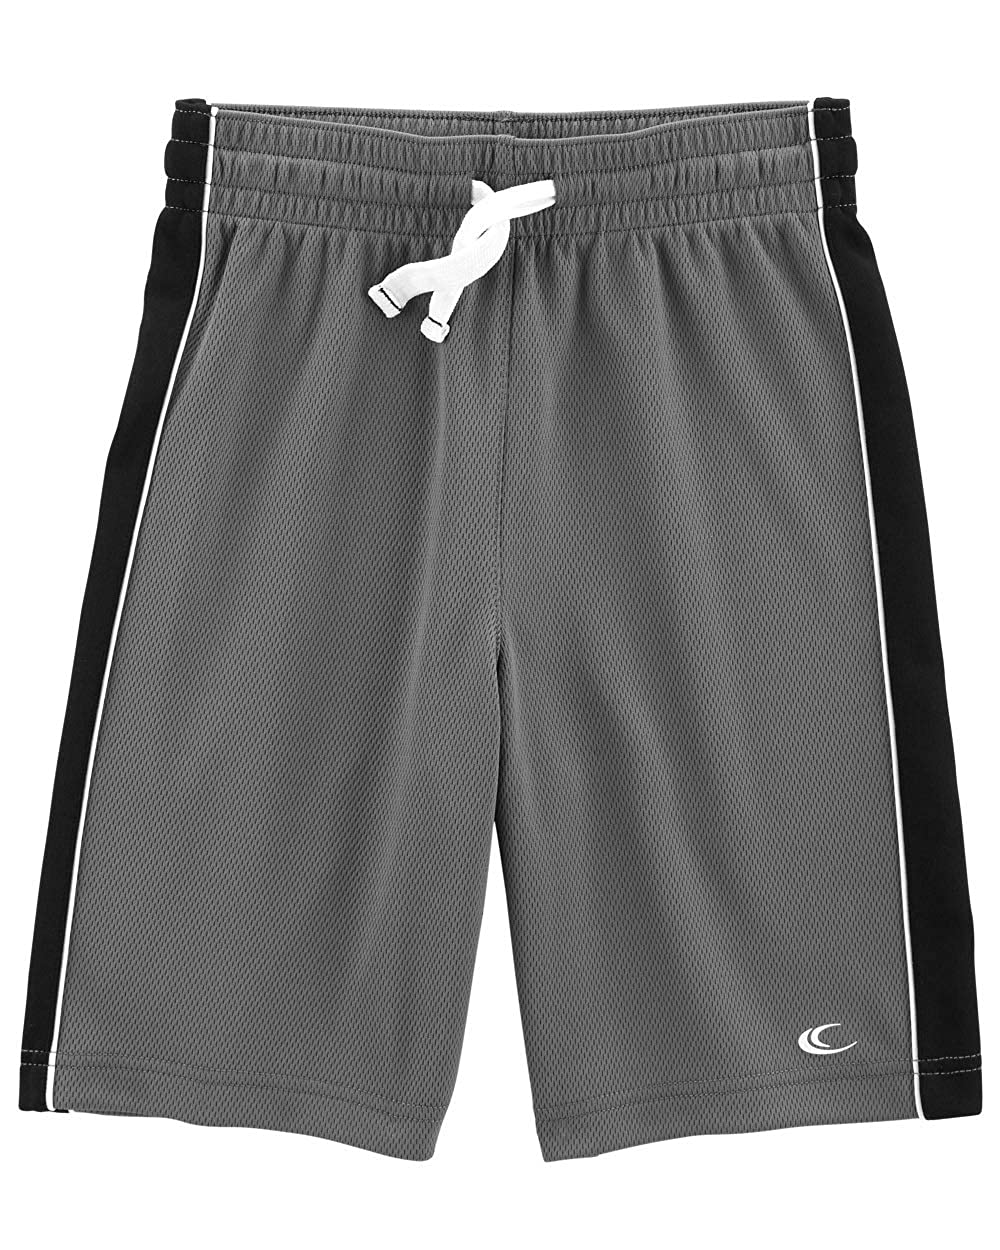 10-12 Kids Grey//Black Carters Big Boys Pull-On Mesh Shorts